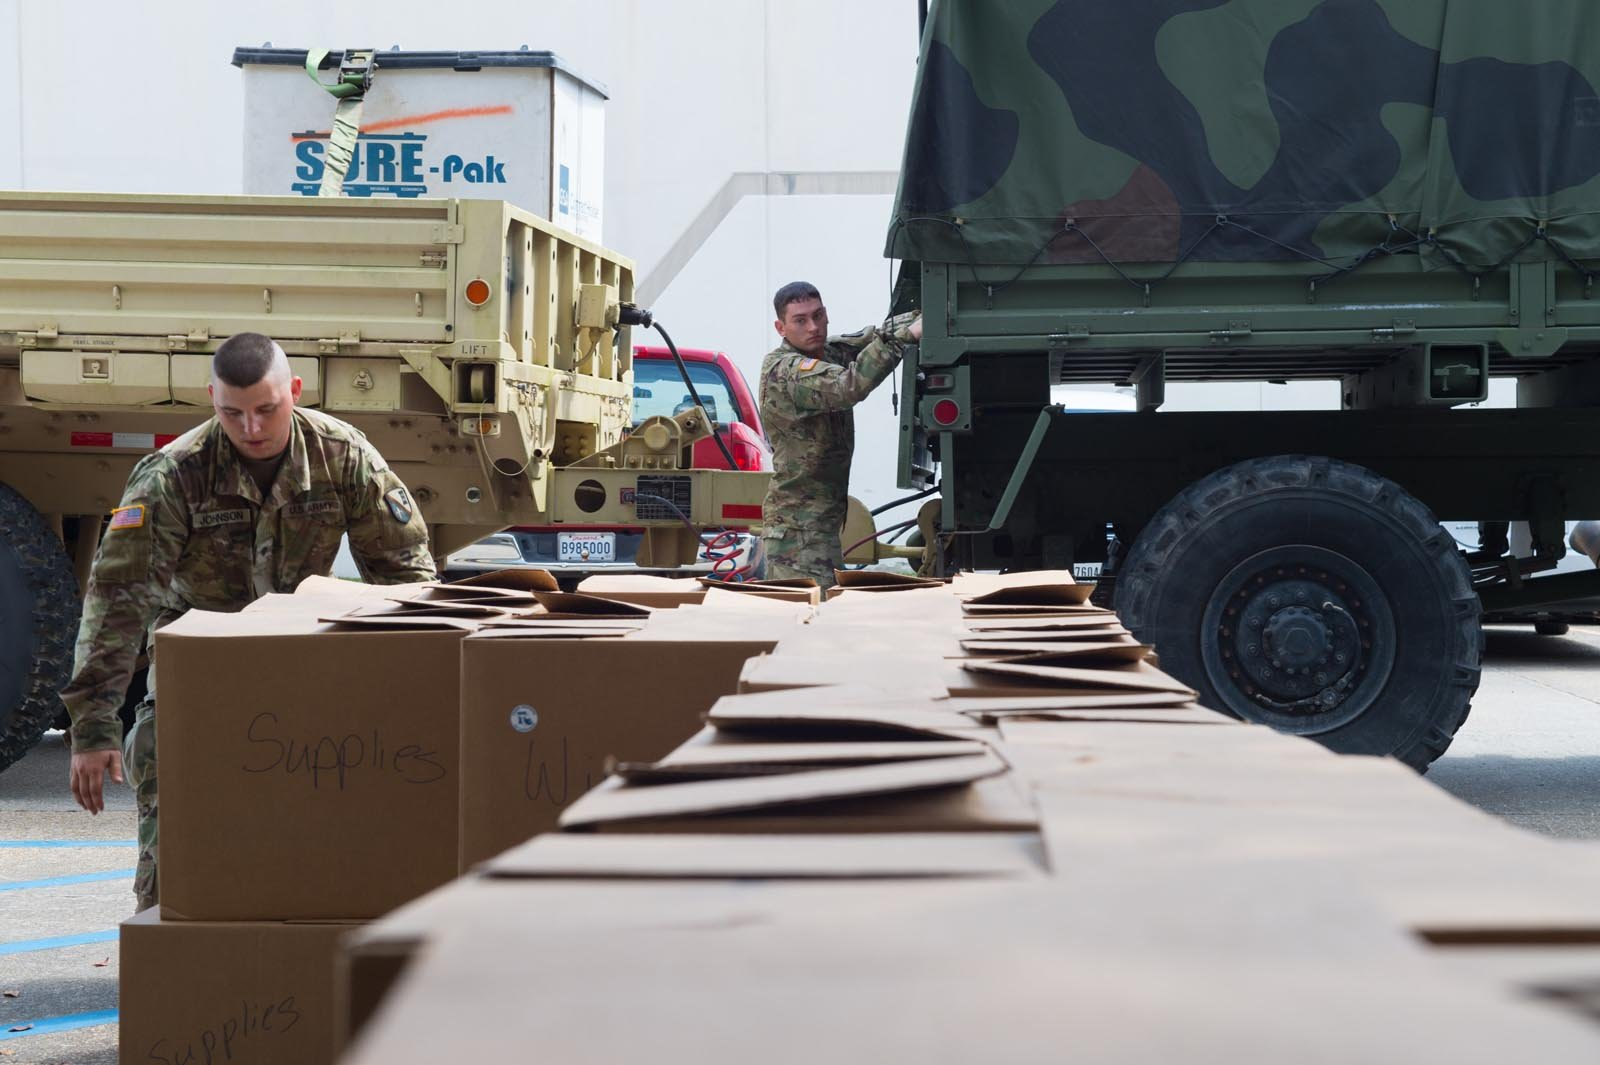 Louisiana National Guardsmen, Spc. Billy Johnson and Pfc. Nicholas Hebert with the 922nd Horizontal Engineer Company, load medical supplies donated by the Trach Mommas in Baton Rouge, Sept. 27, 2017. The supplies are destined for Puerto Rico to provide cr